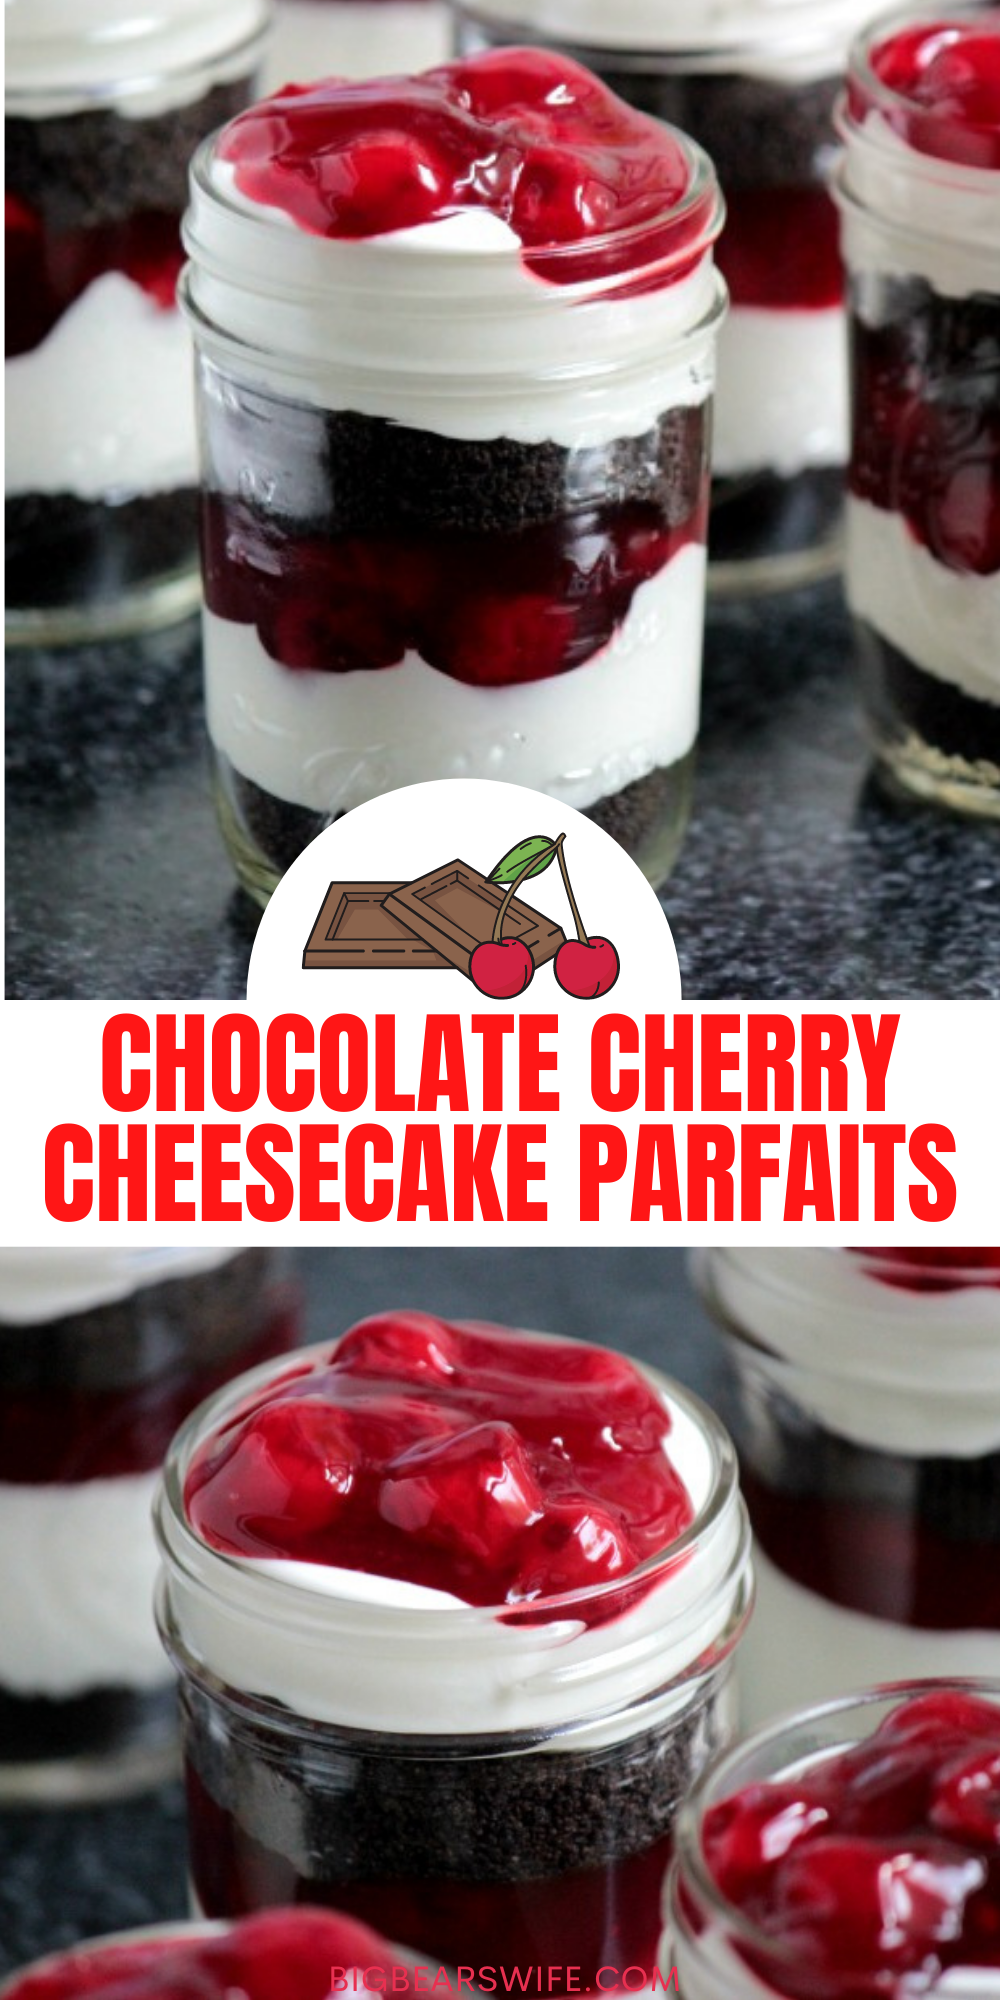 Layers of chocolate cookies, cherry pie filling and no bake cheesecake filling make up these super easy Chocolate Cherry Cheesecake Parfaits for dessert! via @bigbearswife